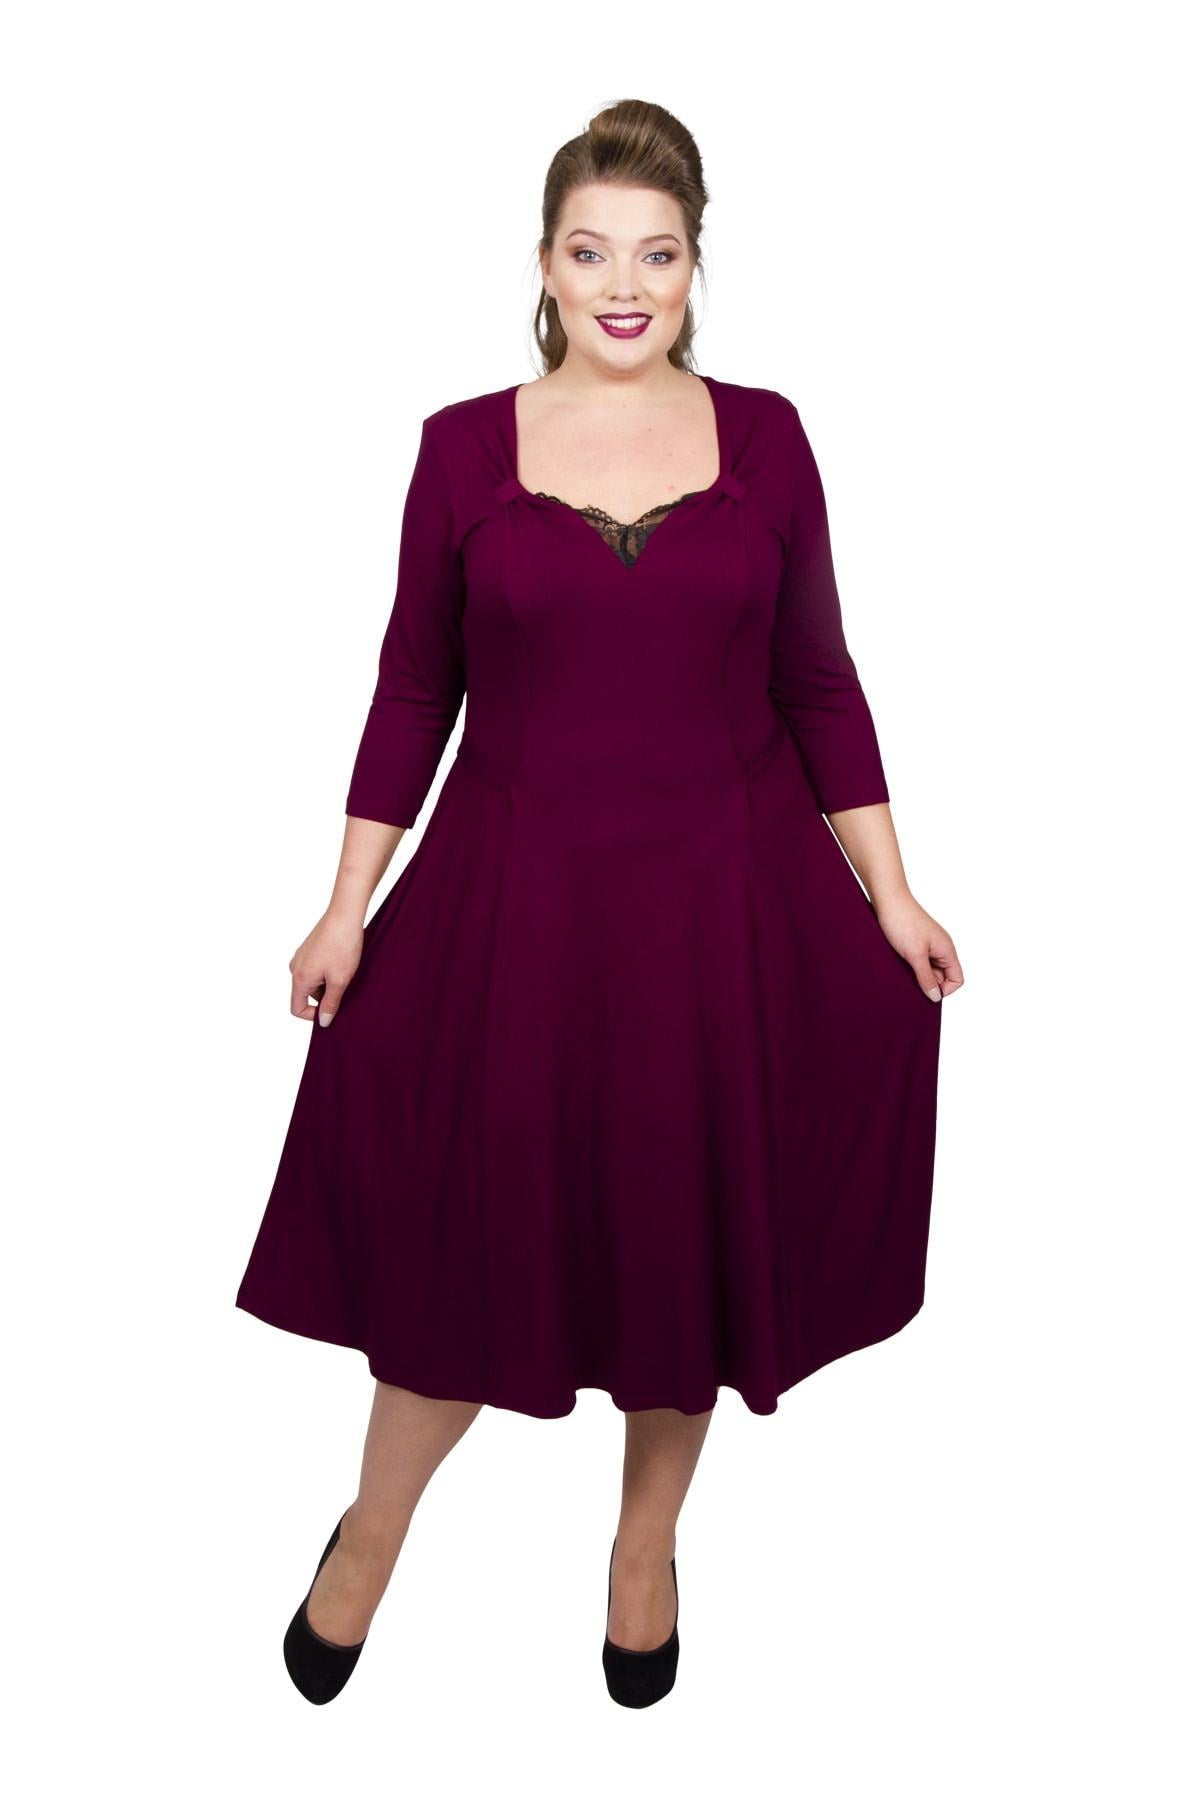 Swing Dance Clothing You Can Dance In Lace Sweetheart Tab 40s Dress - Burgundy  16 £55.00 AT vintagedancer.com